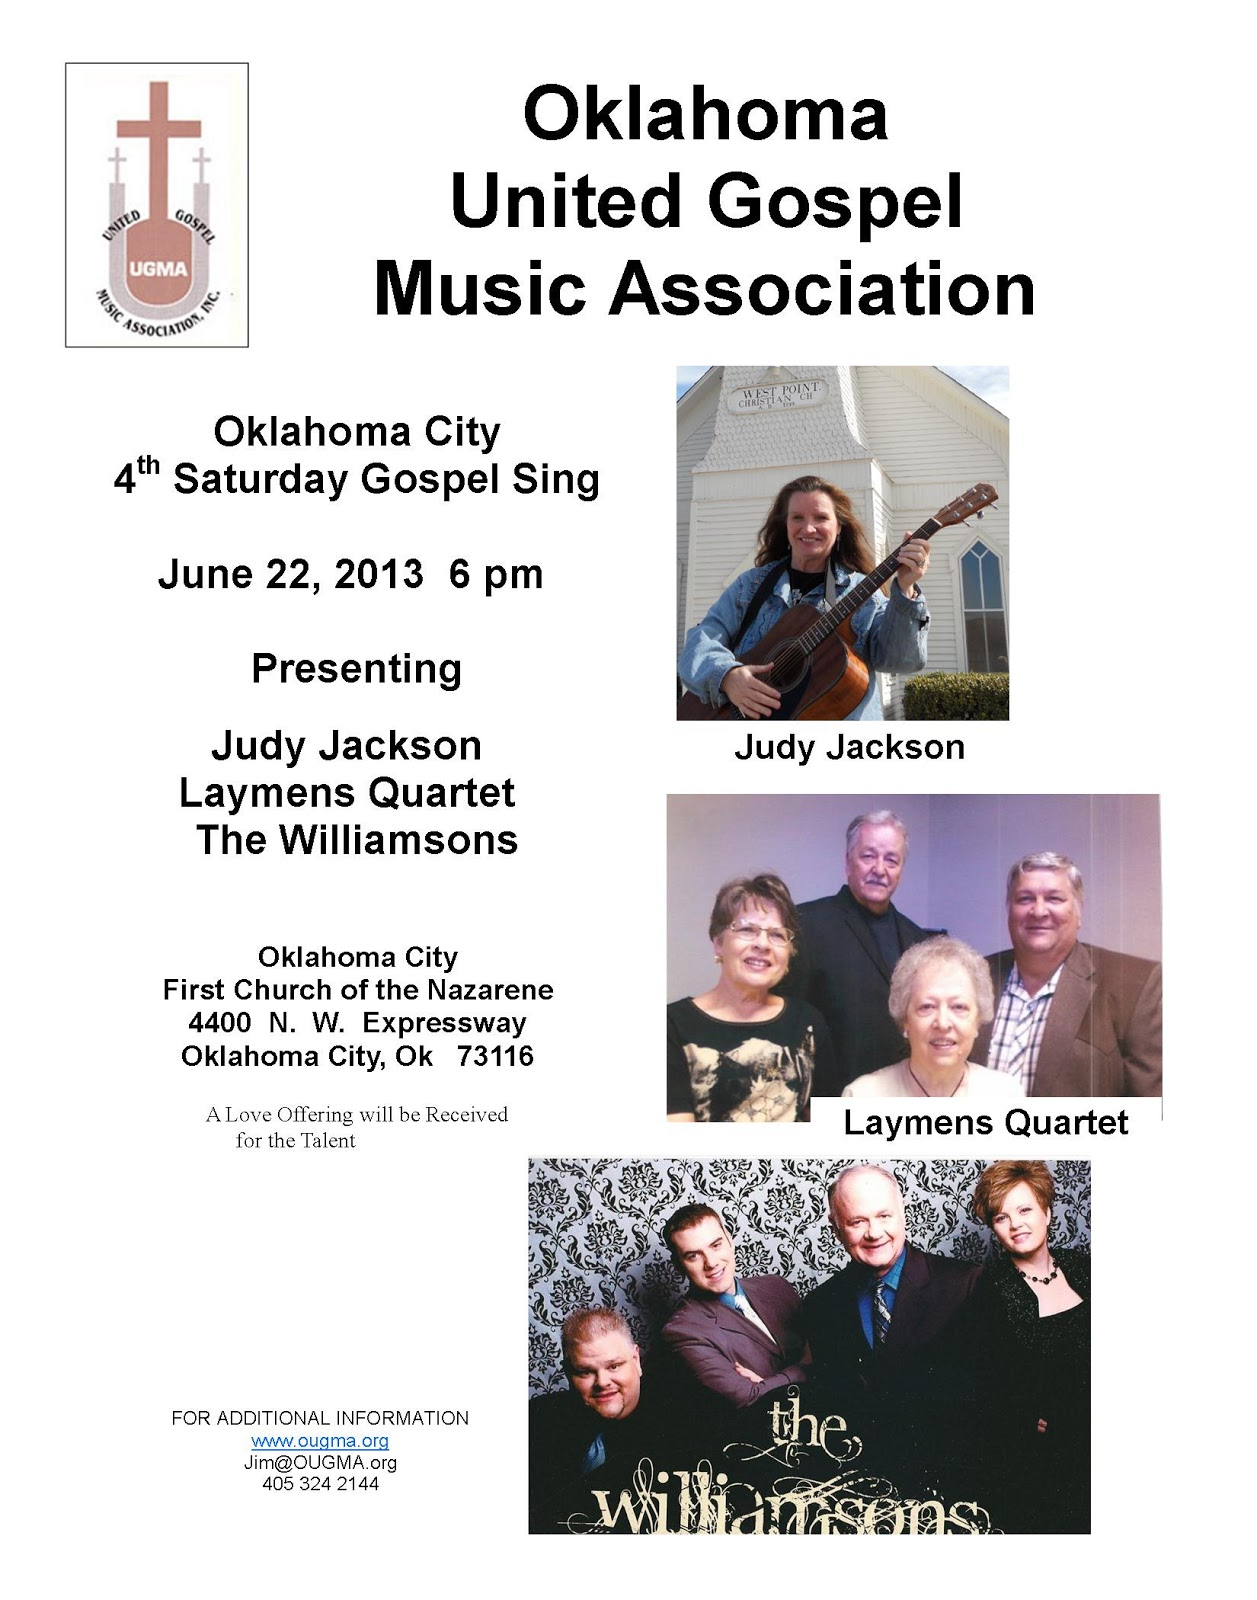 Oklahoma United Gospel Music Association: Two Great Concerts